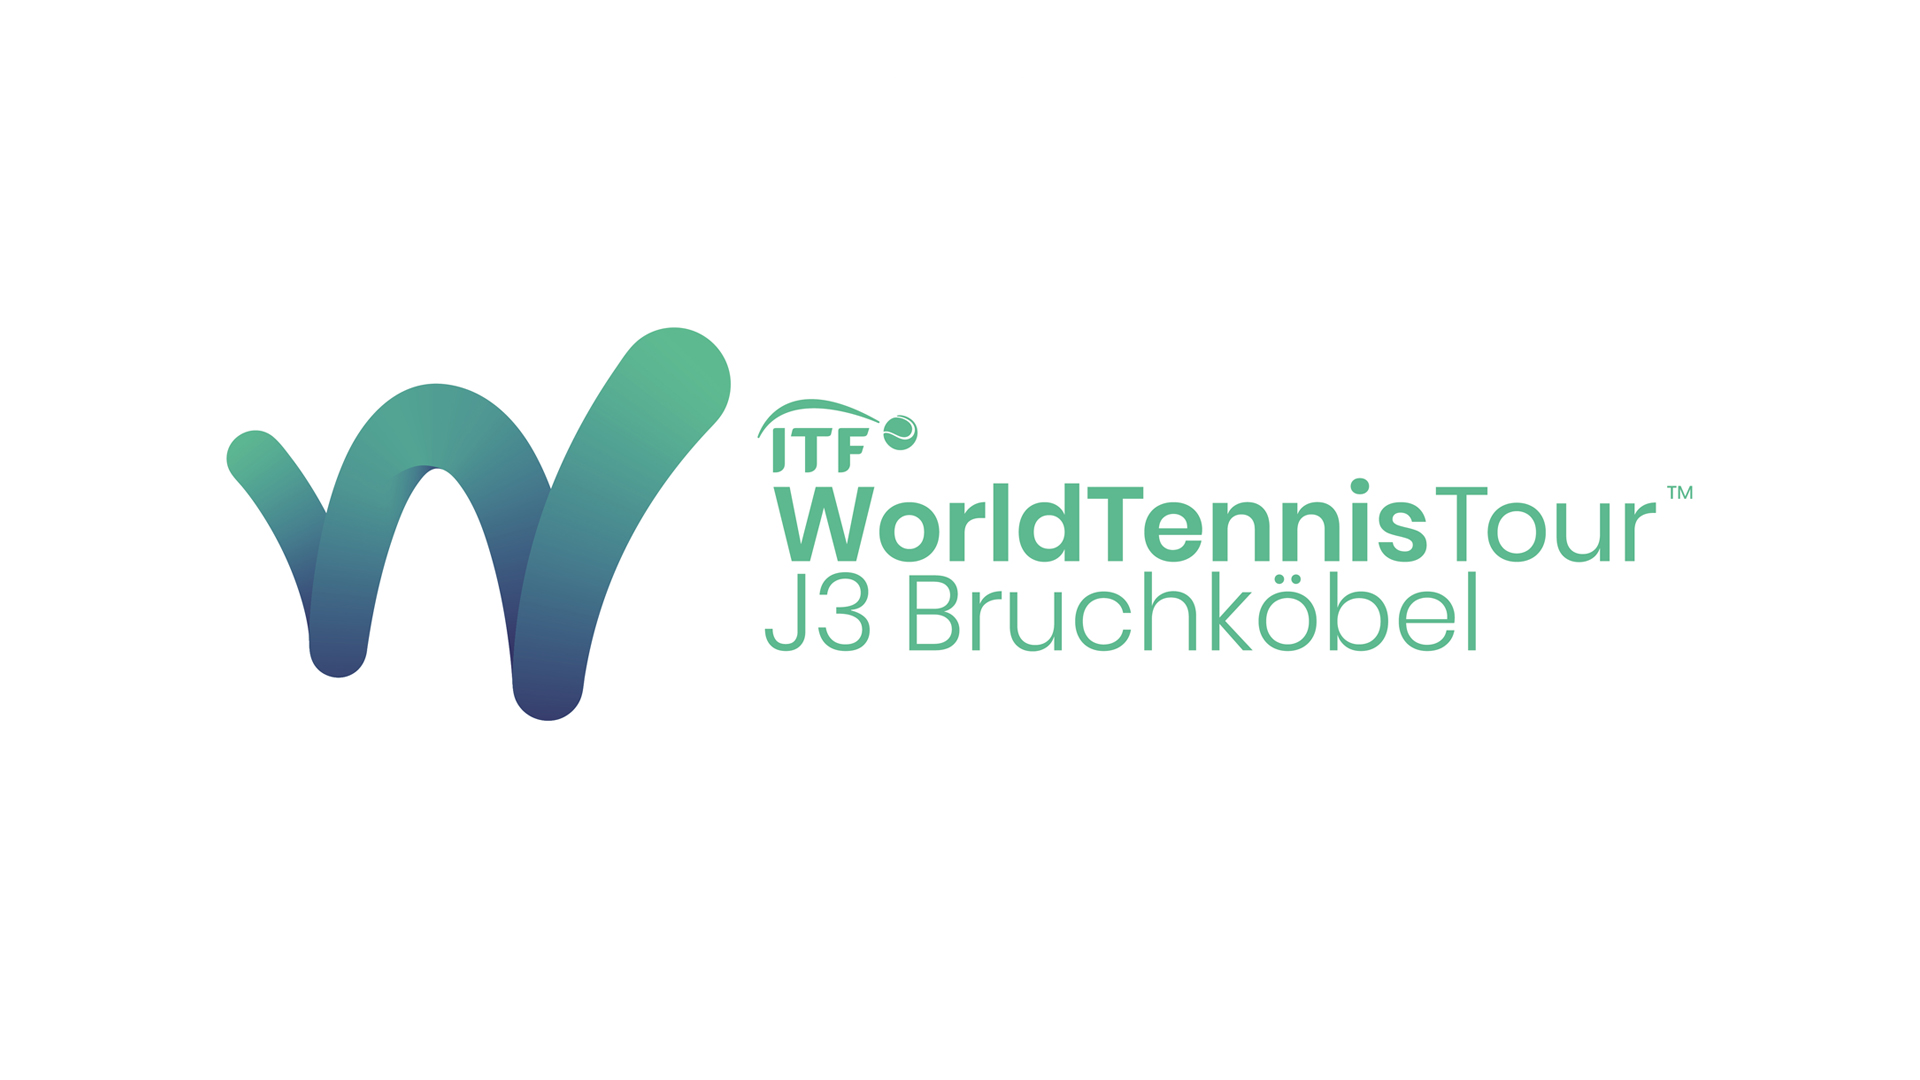 20. ITF Juniors Turnier beim TCB in 2020 erstmals in Kategorie J3